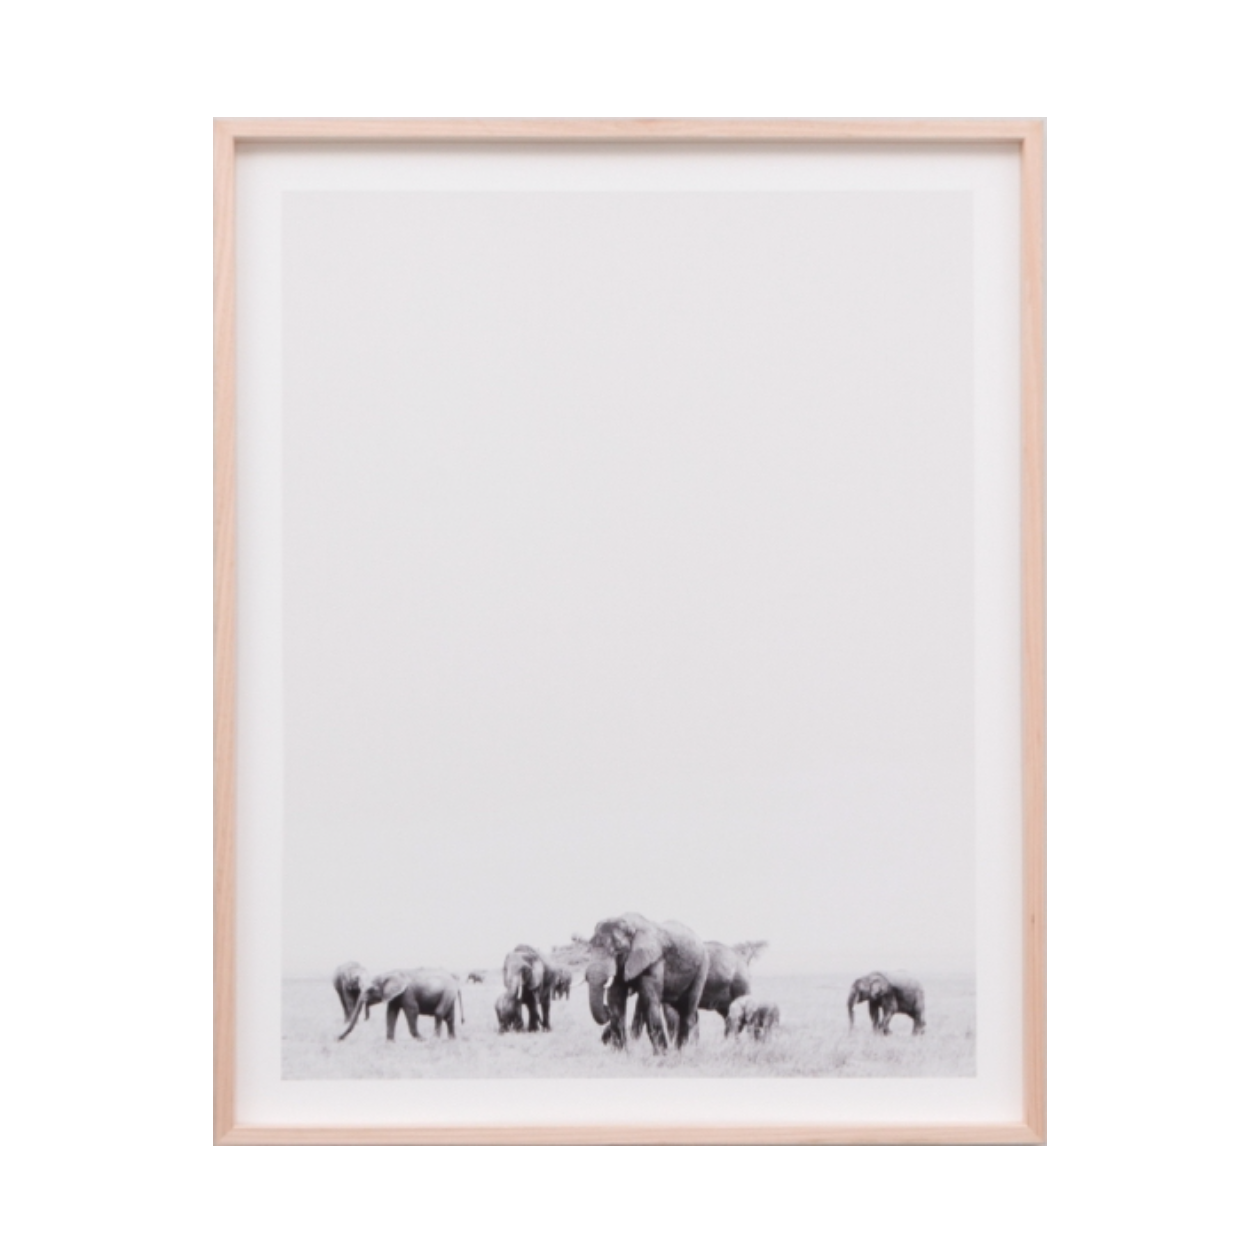 Travelling Herd Photographic Print | Black and white